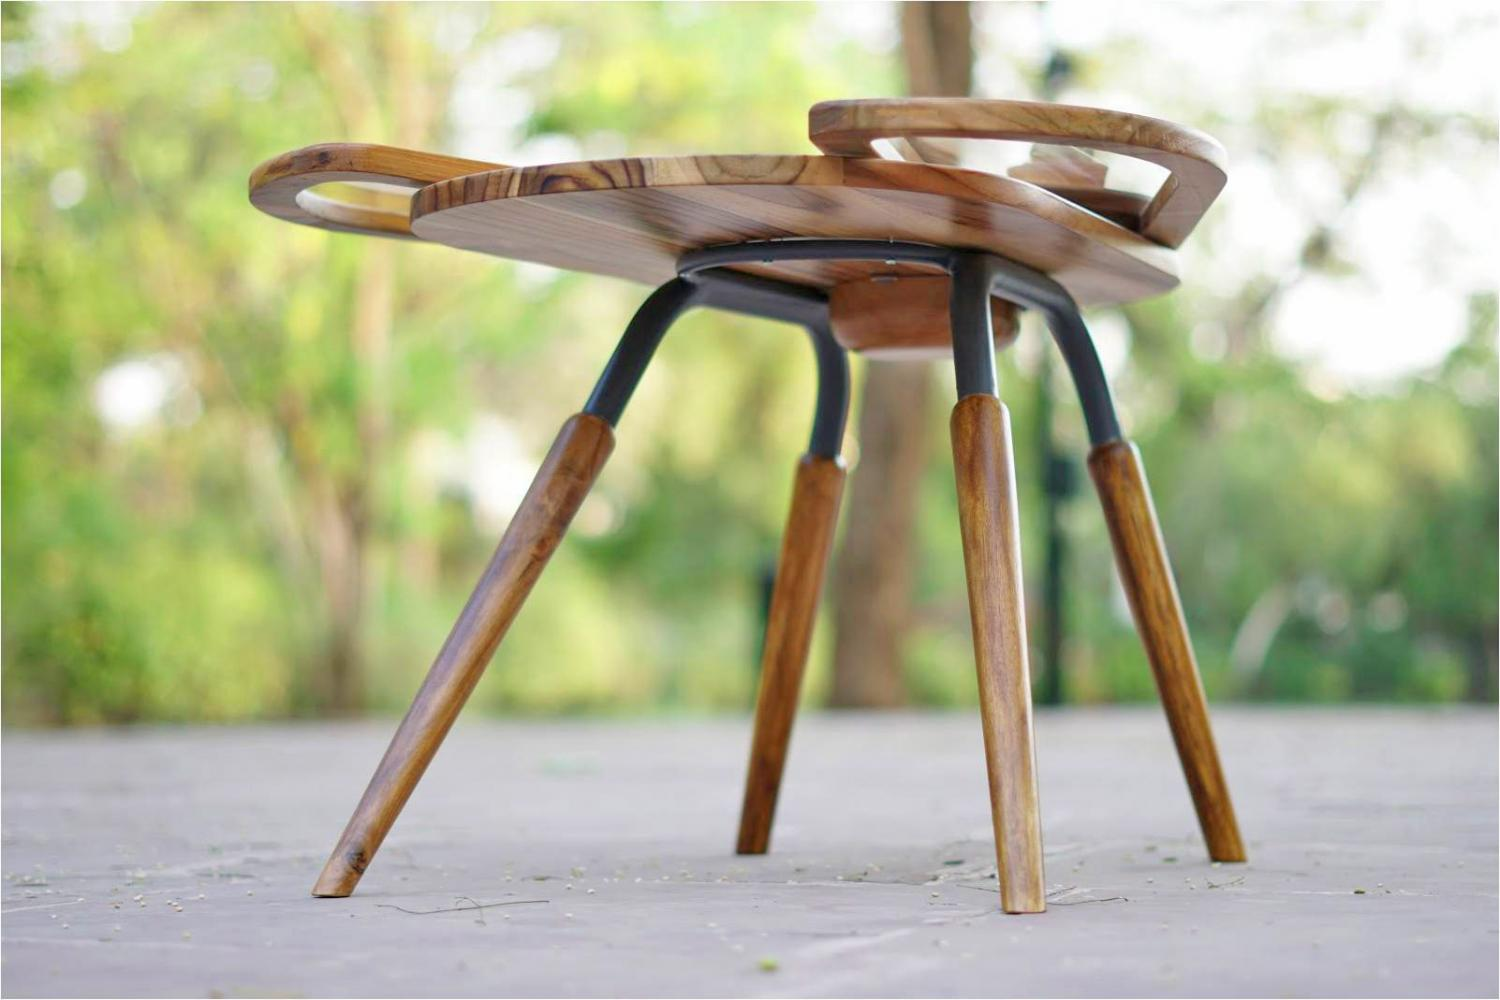 Beetle Inspired Coffee Table Has Wings That Spread Out To Increase Surface Area - Elytra extending coffee table